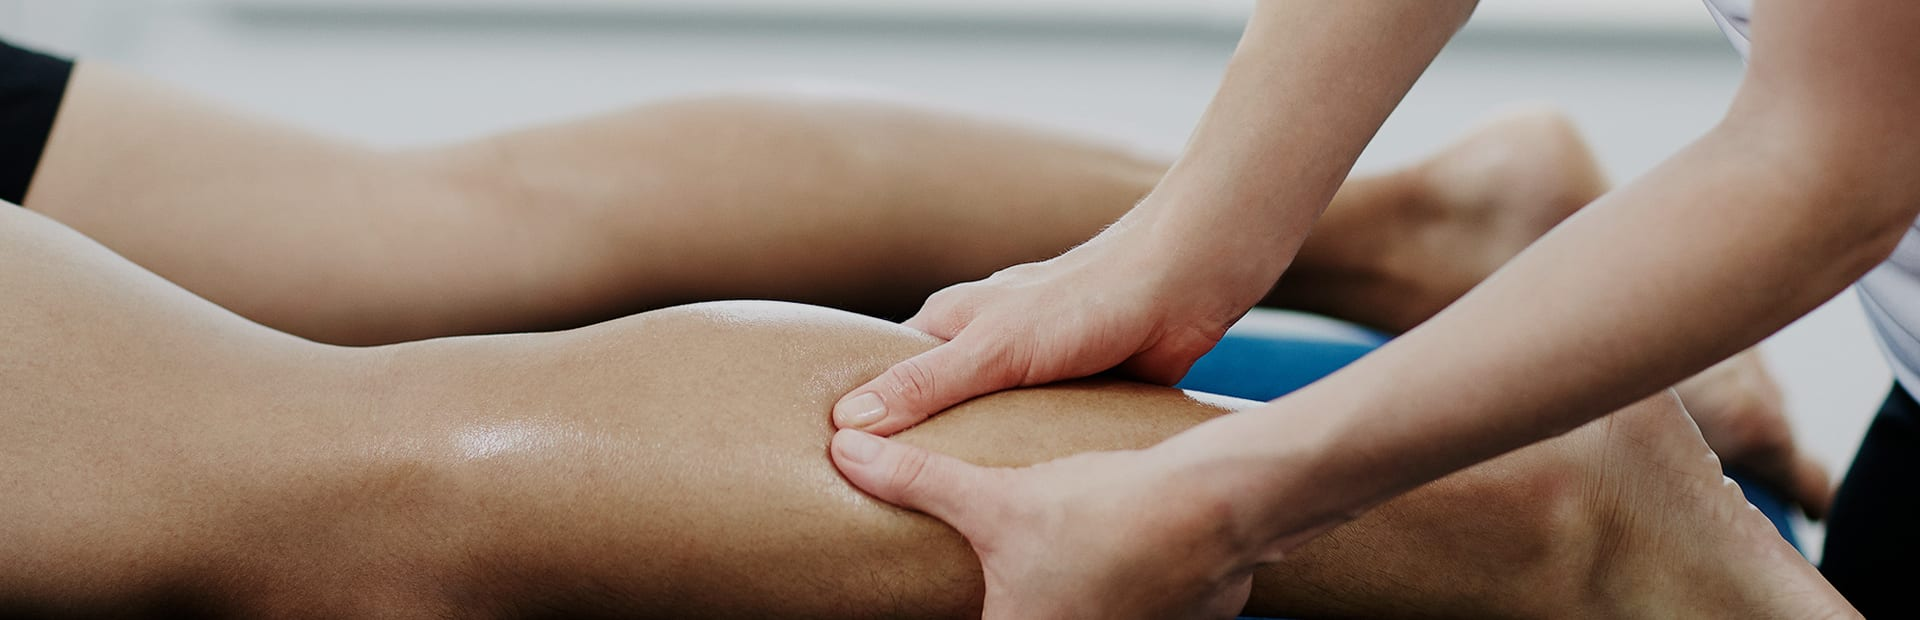 Sports massage therapist working on a client